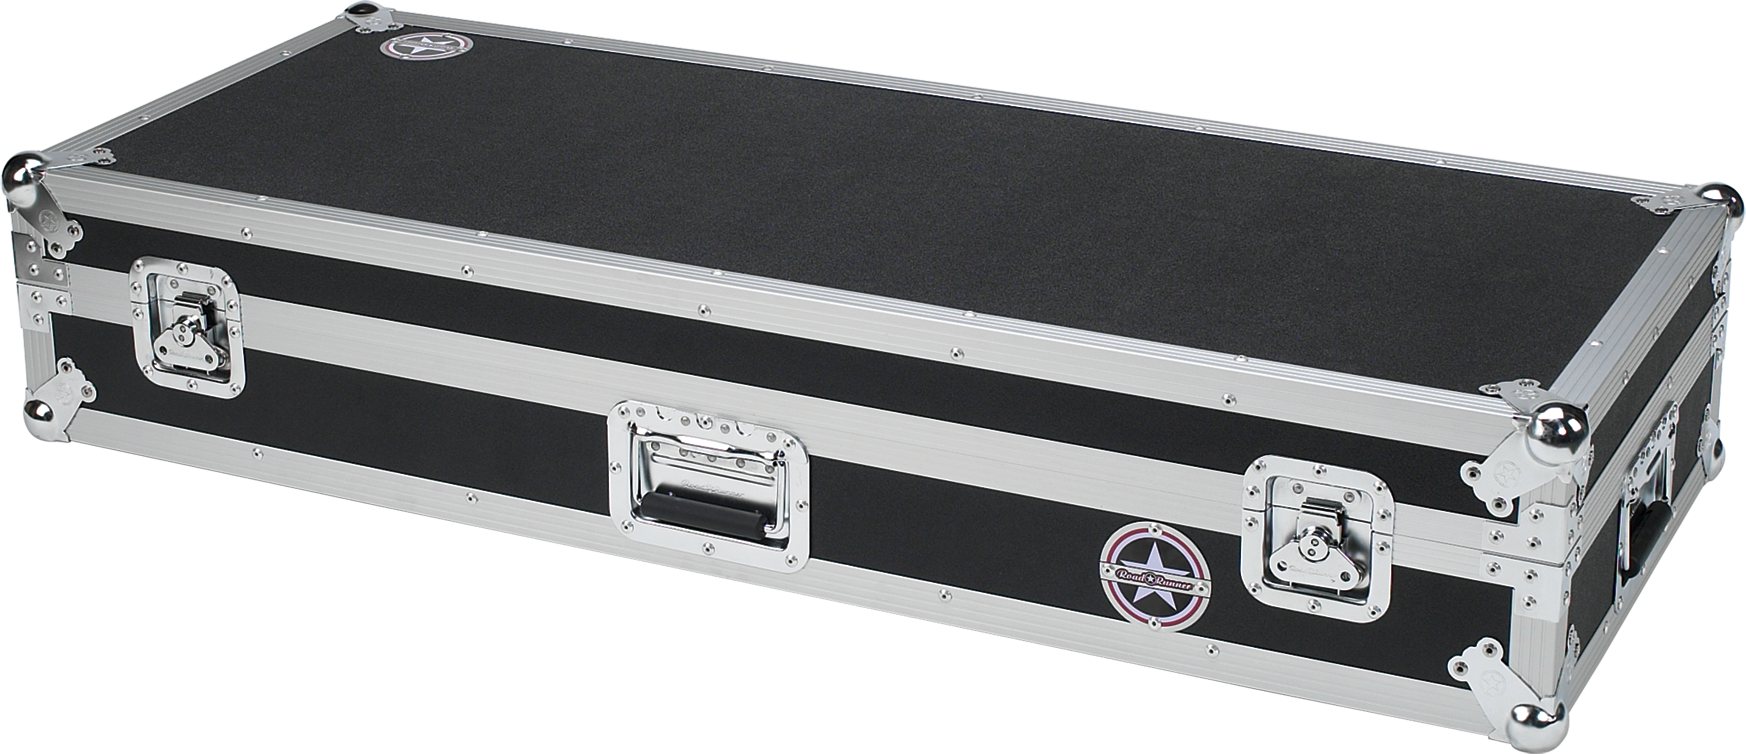 88 Key Keyboard Flight Case with Casters Road Runner KBRR88W